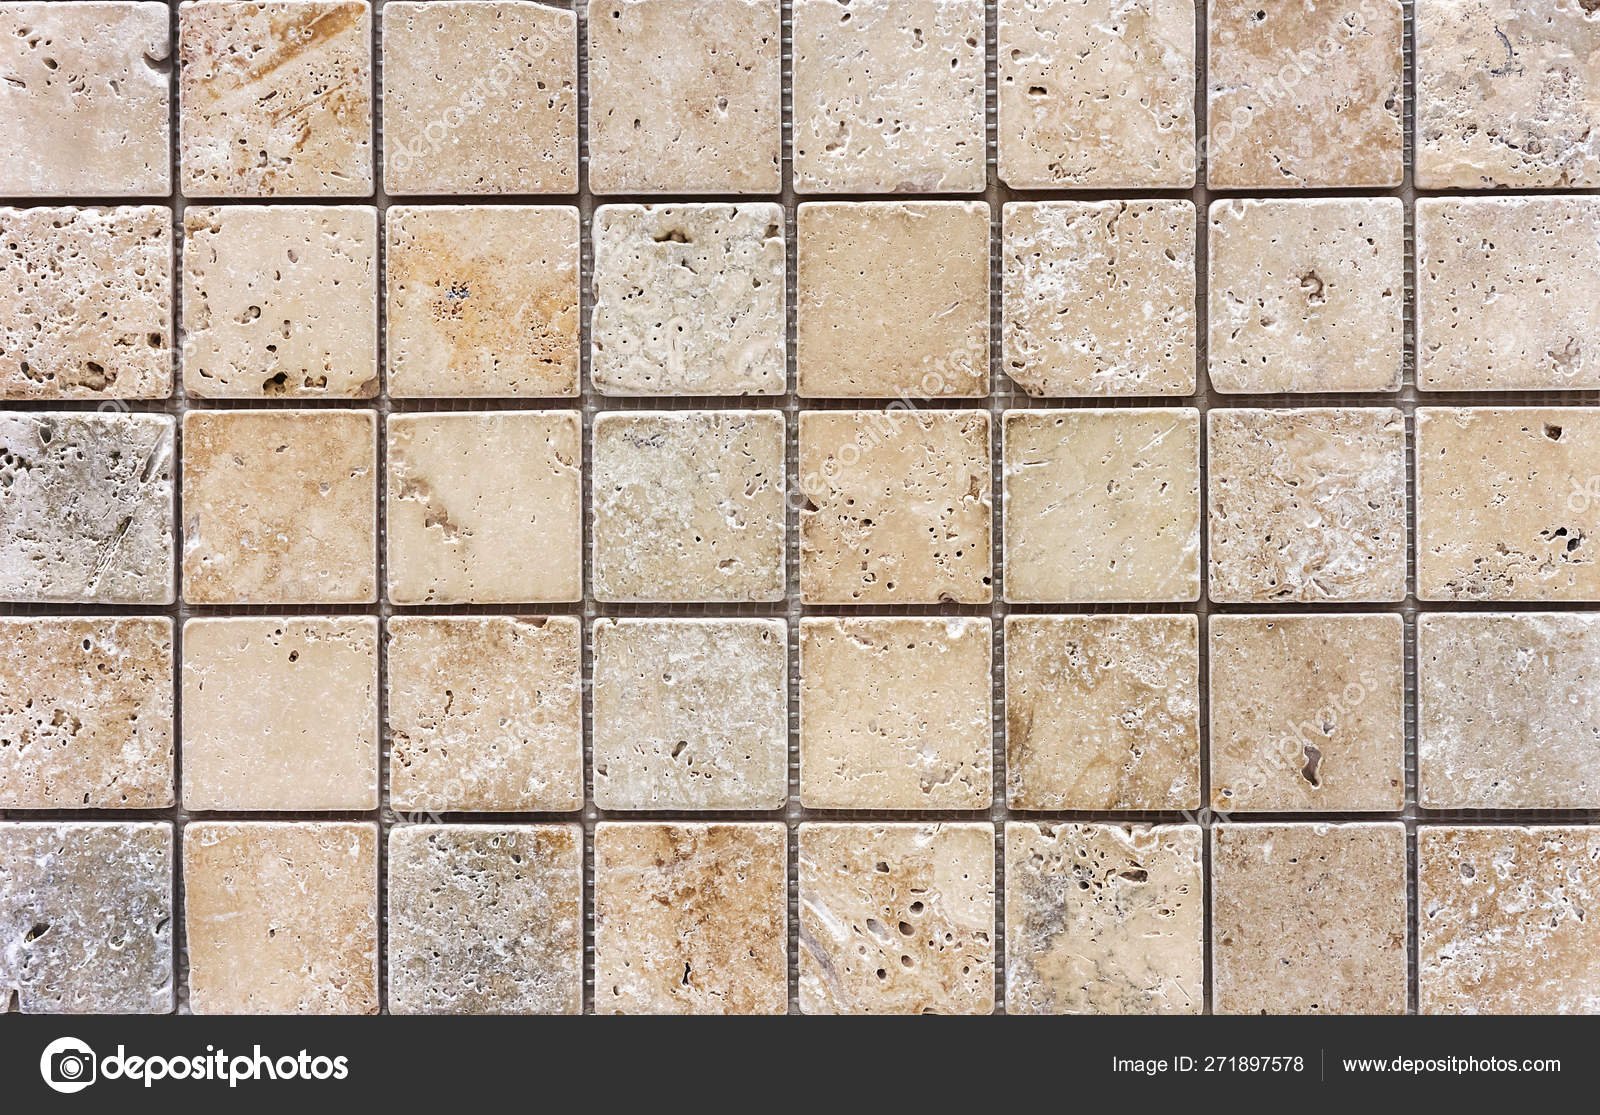 Ceramic Tile Mosaic Background And Texture Tile Mosaic Tile Mosaic In The Interior Of The Bathroom Or Kitchen Stock Photo C Valemaxxx 271897578